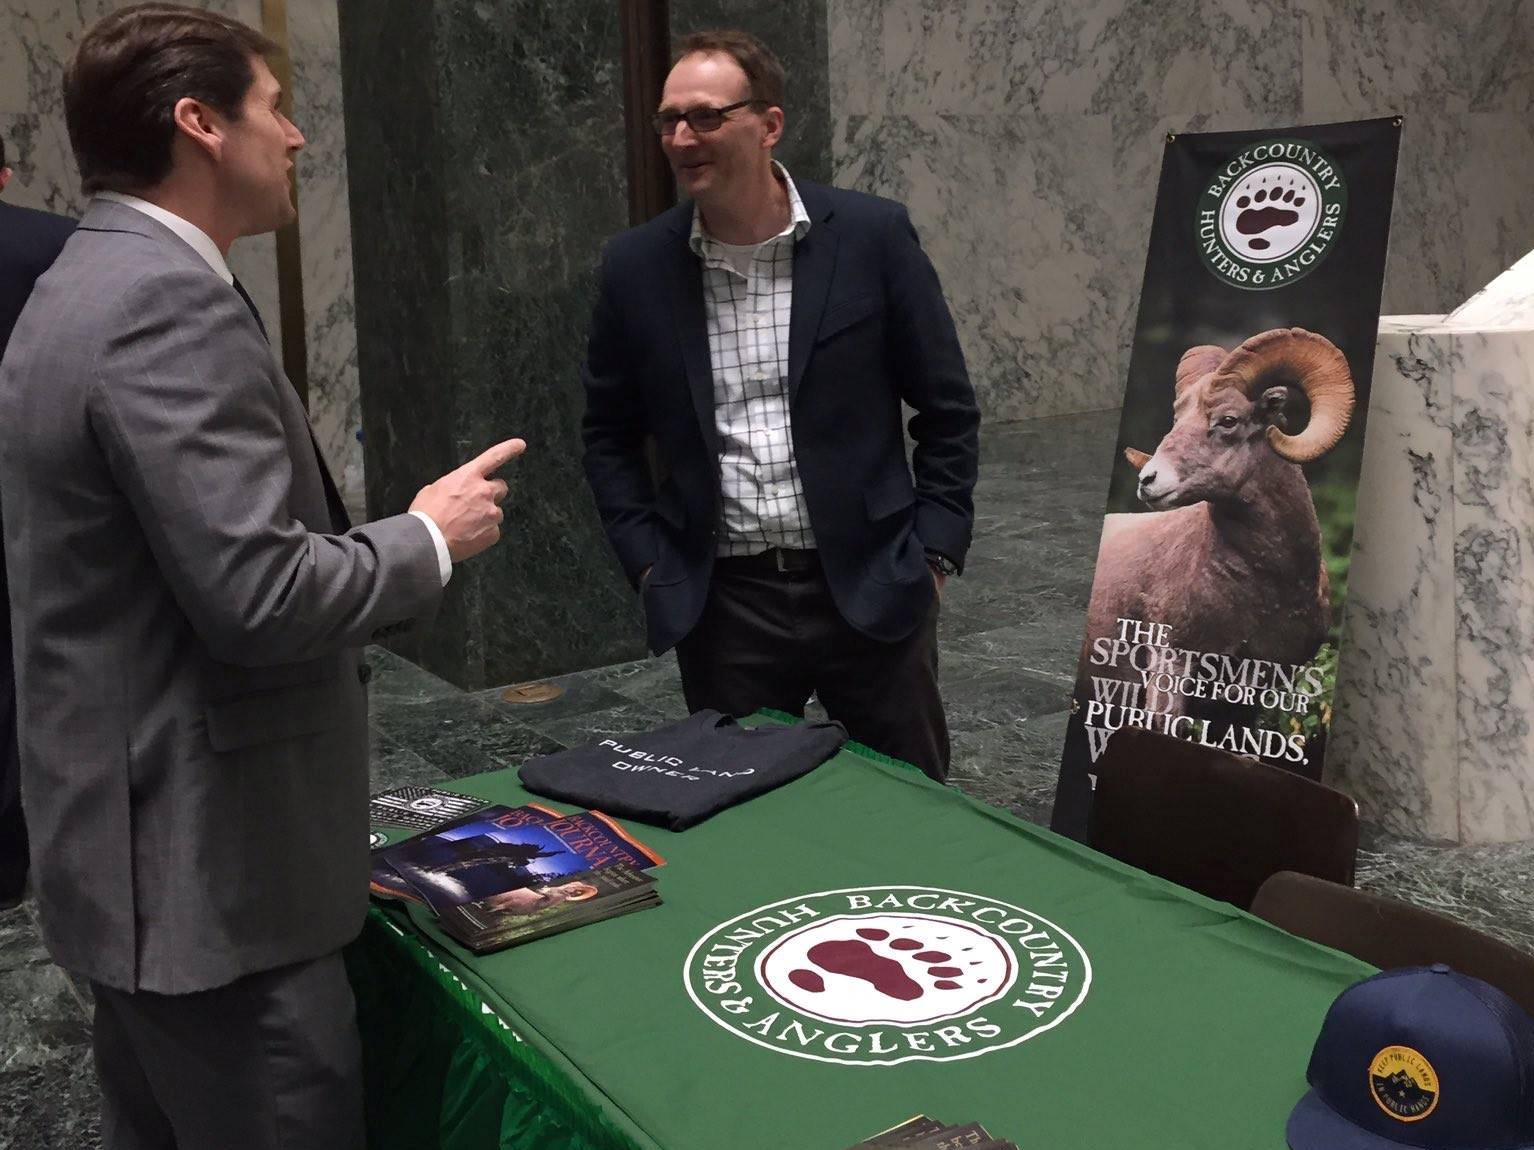 In March 2017, Assemblyman Jones learned more about the concerns of hunters, fishers and trappers in our state during the annual Sportsmen's Day in Albany.